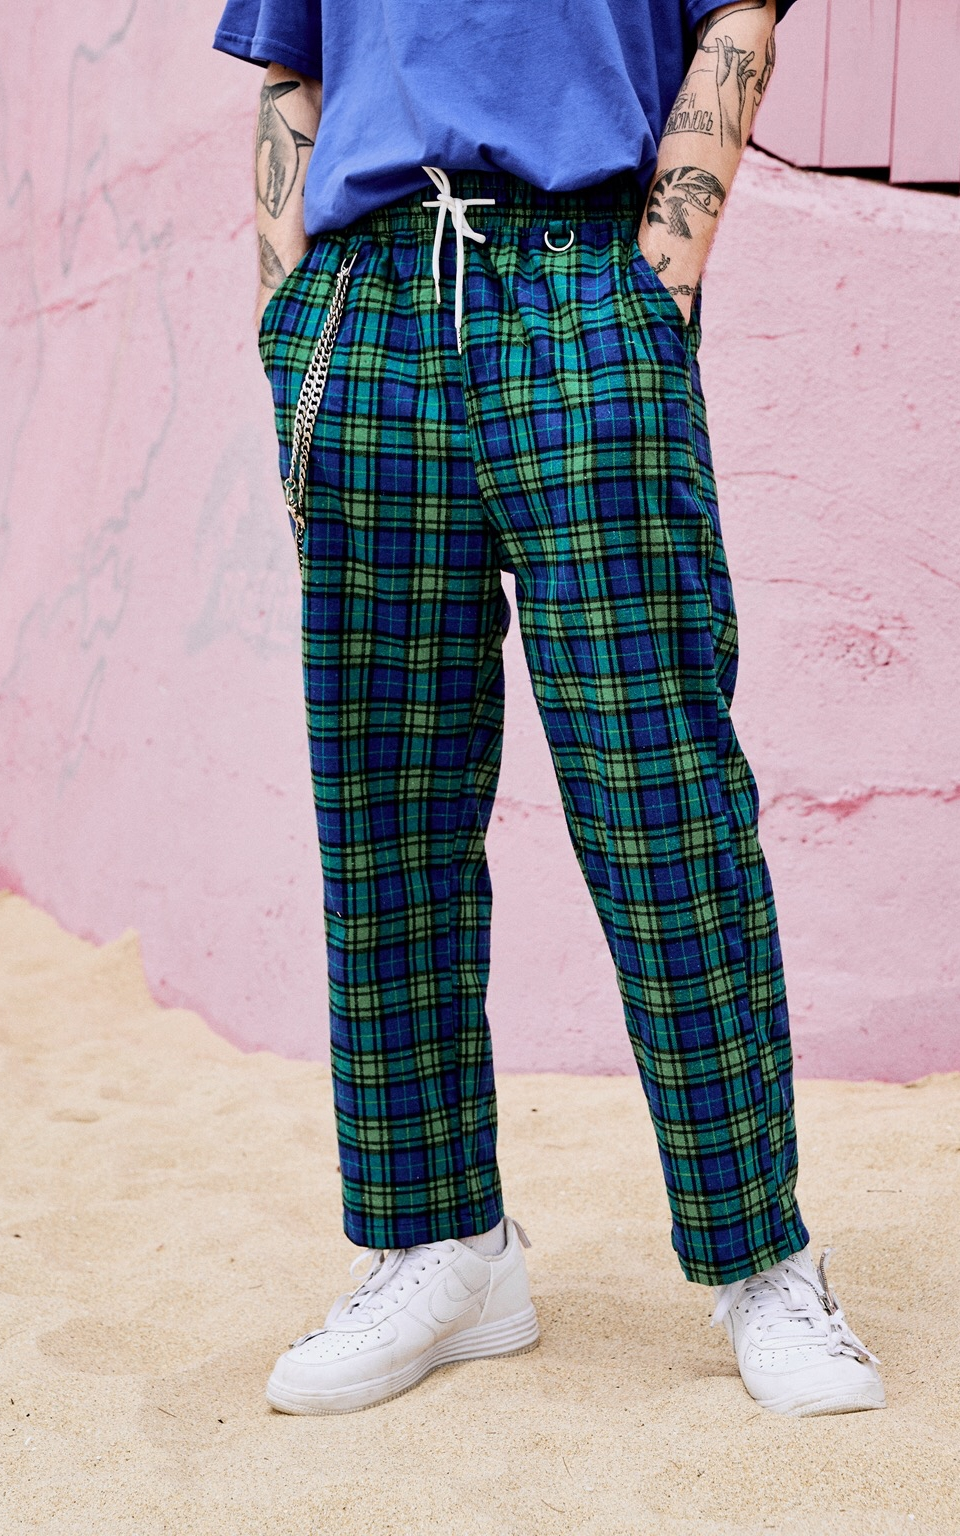 EXTREME PLAID PANTS WITH CHAIN BLUE GREEN